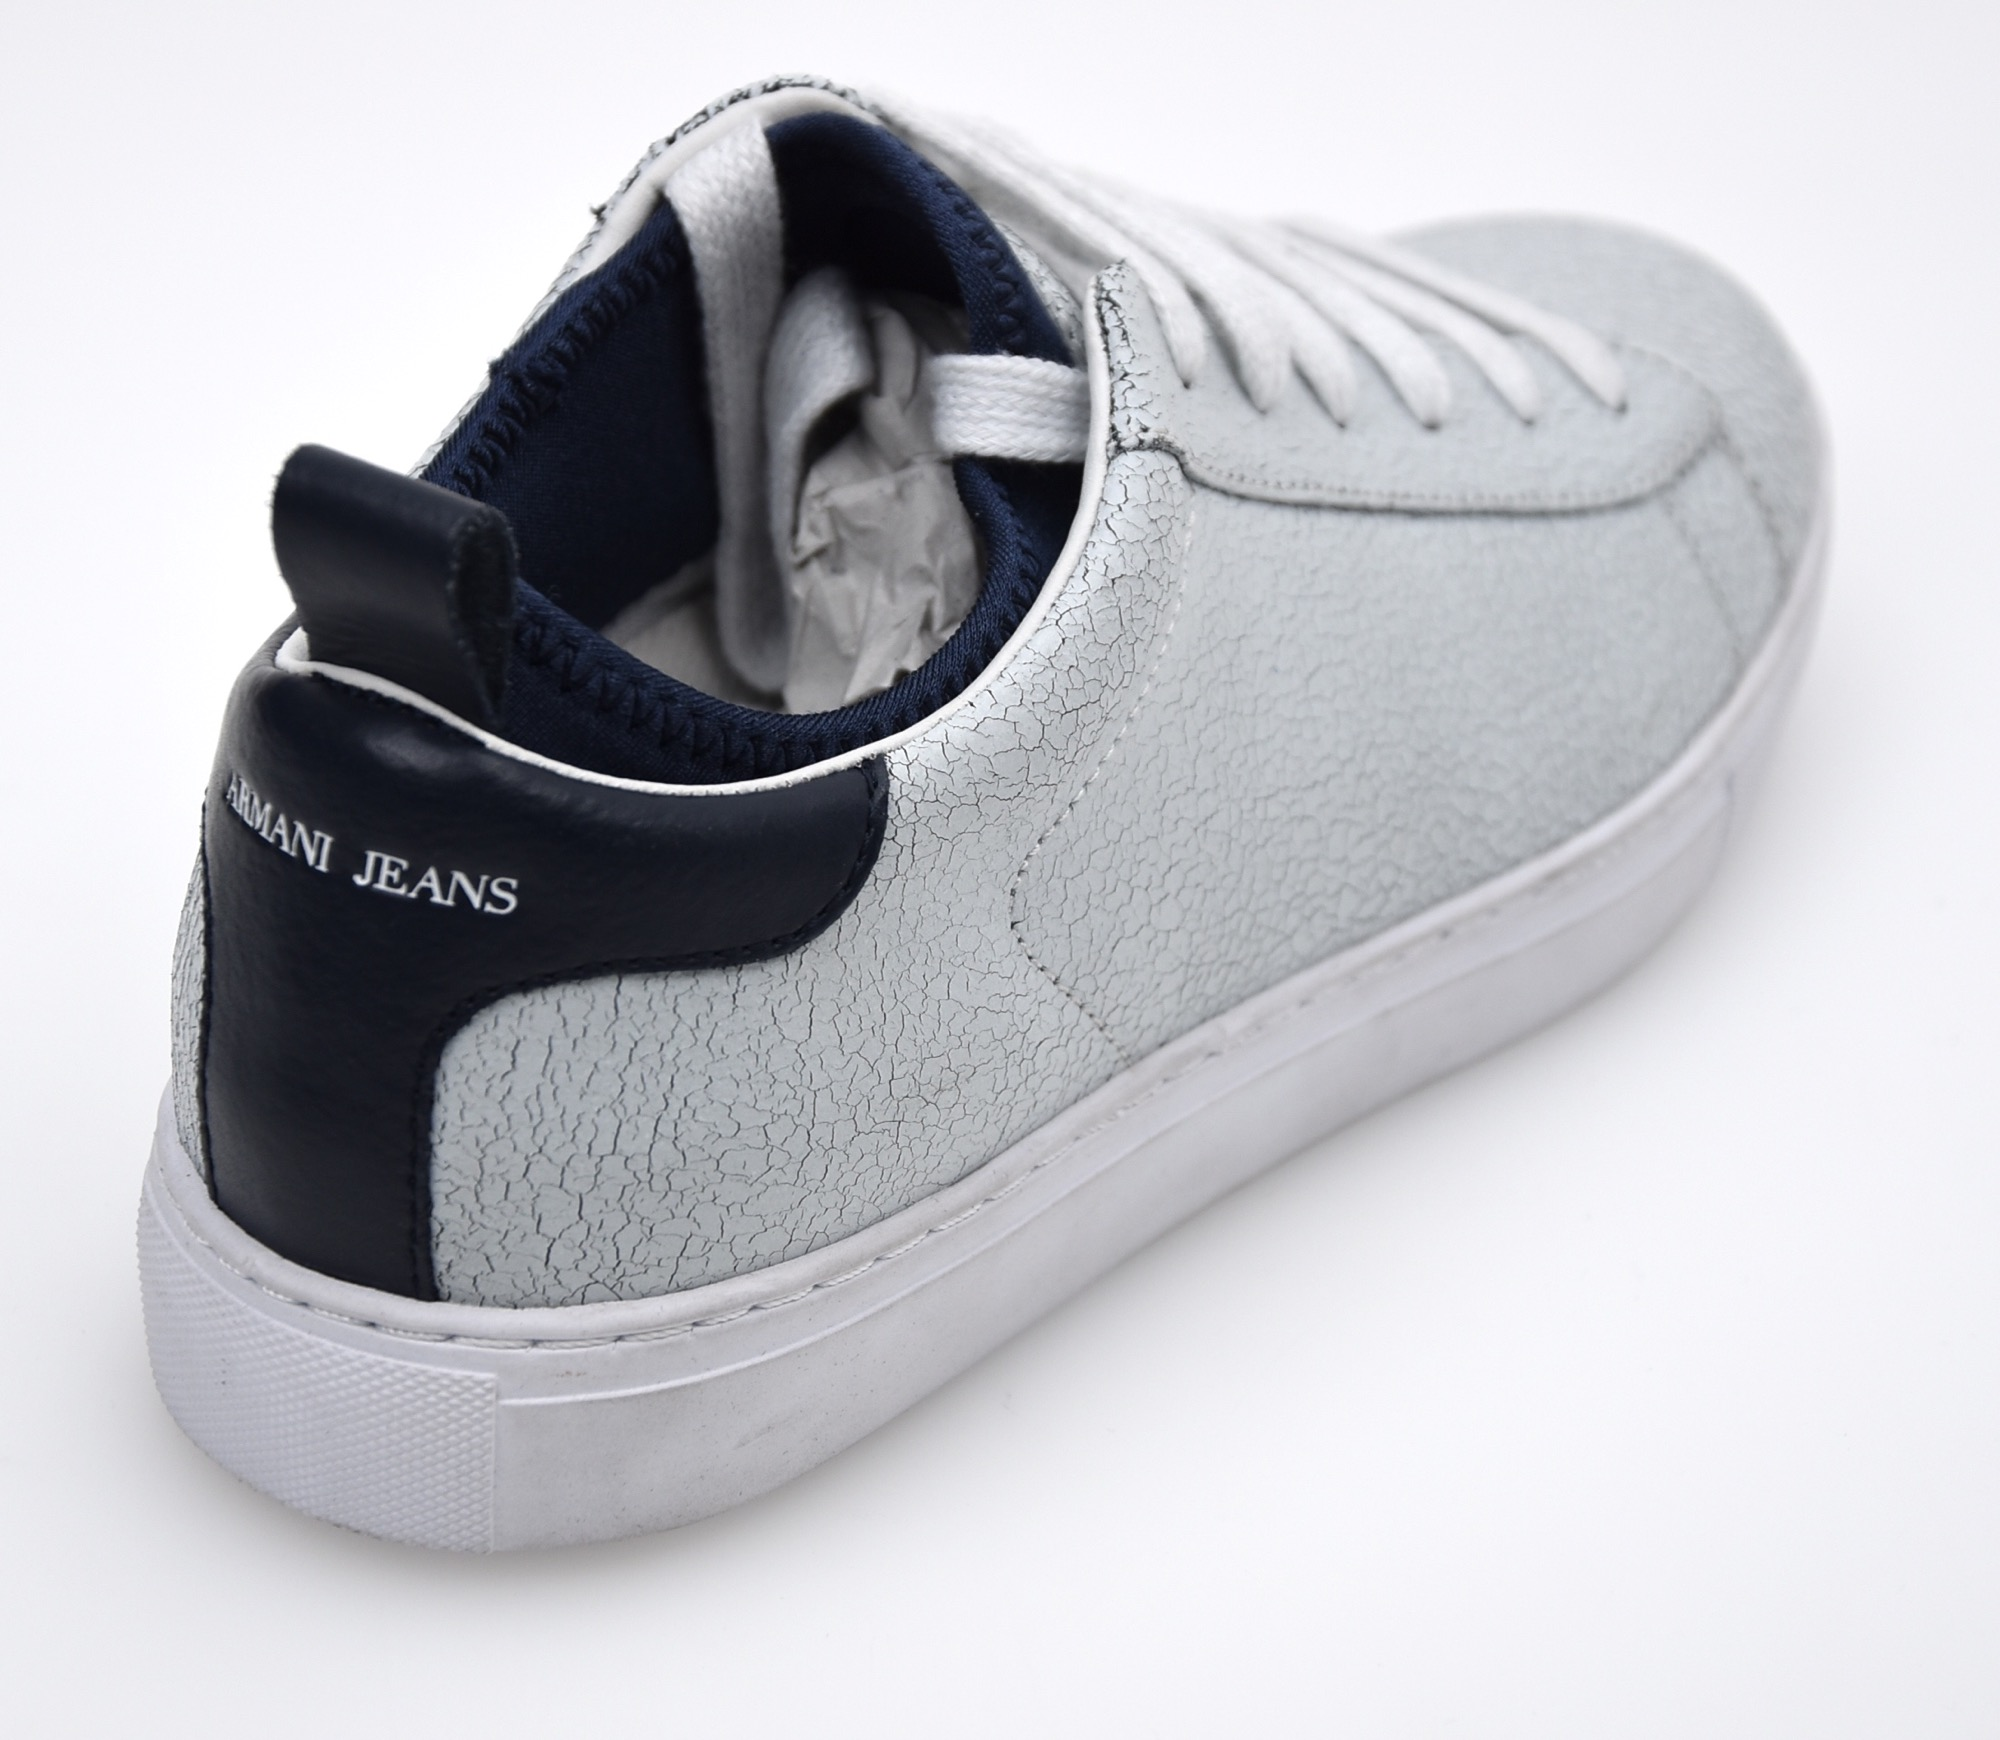 armani jeans woman sneaker shoes white code 6a430 ebay. Black Bedroom Furniture Sets. Home Design Ideas